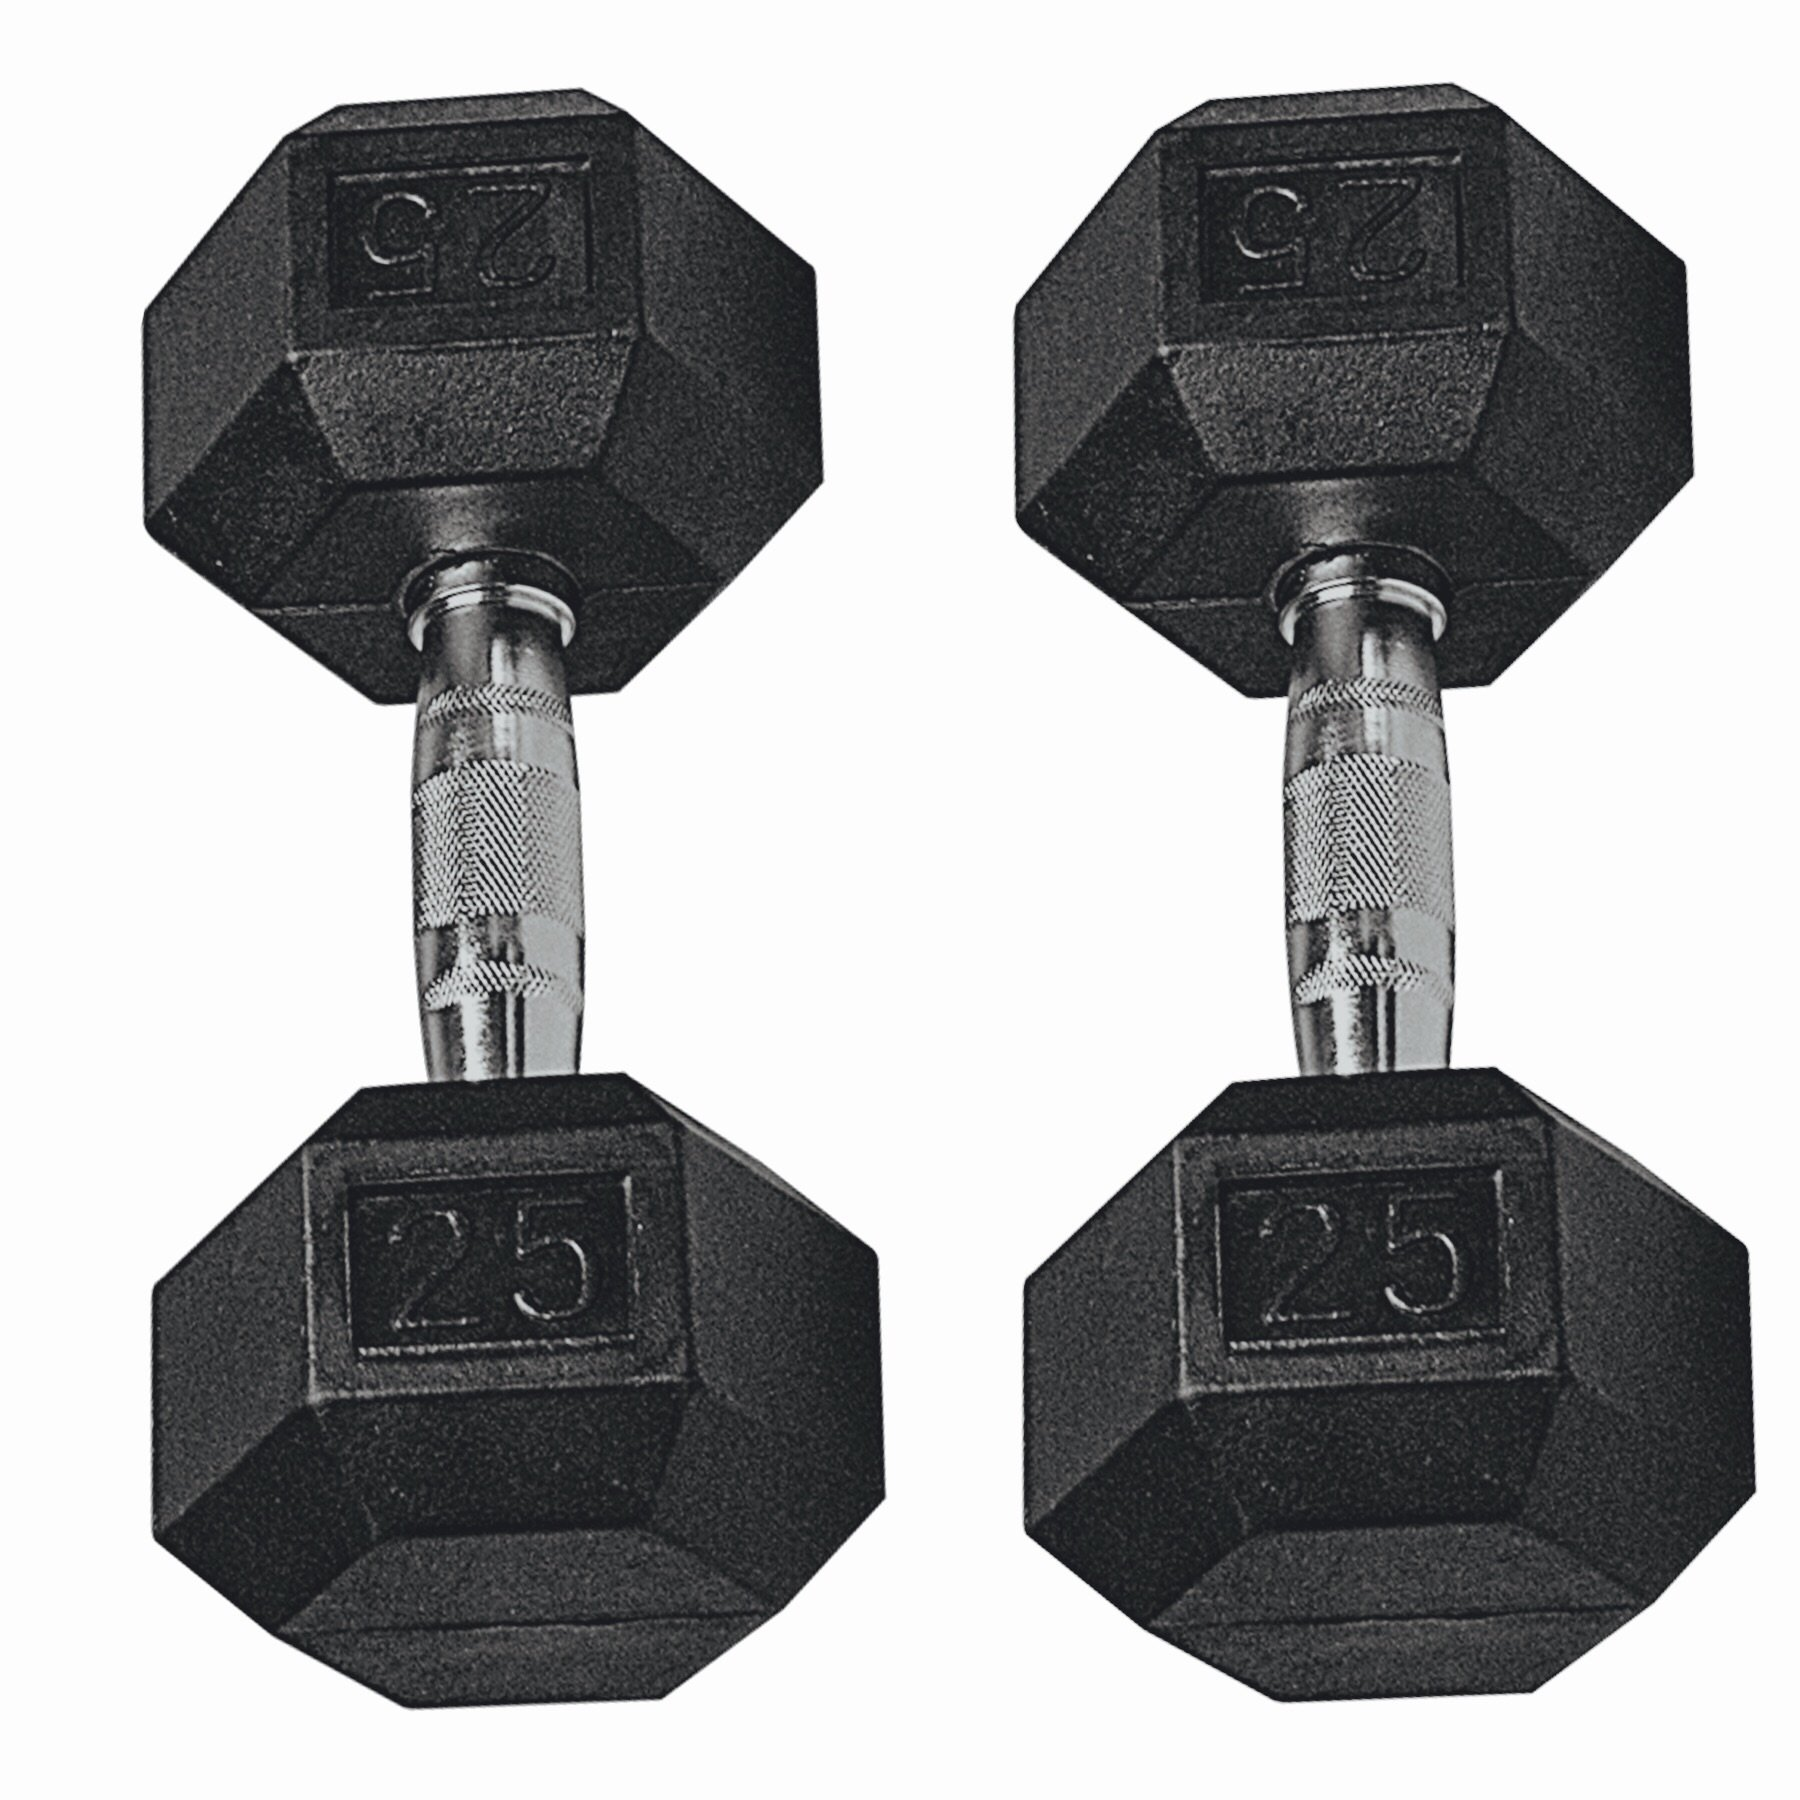 GYMENIST Set of 2 Hex Rubber Dumbbell with Metal Handles, Pair of 2 Heavy Dumbbells (25 Lb)